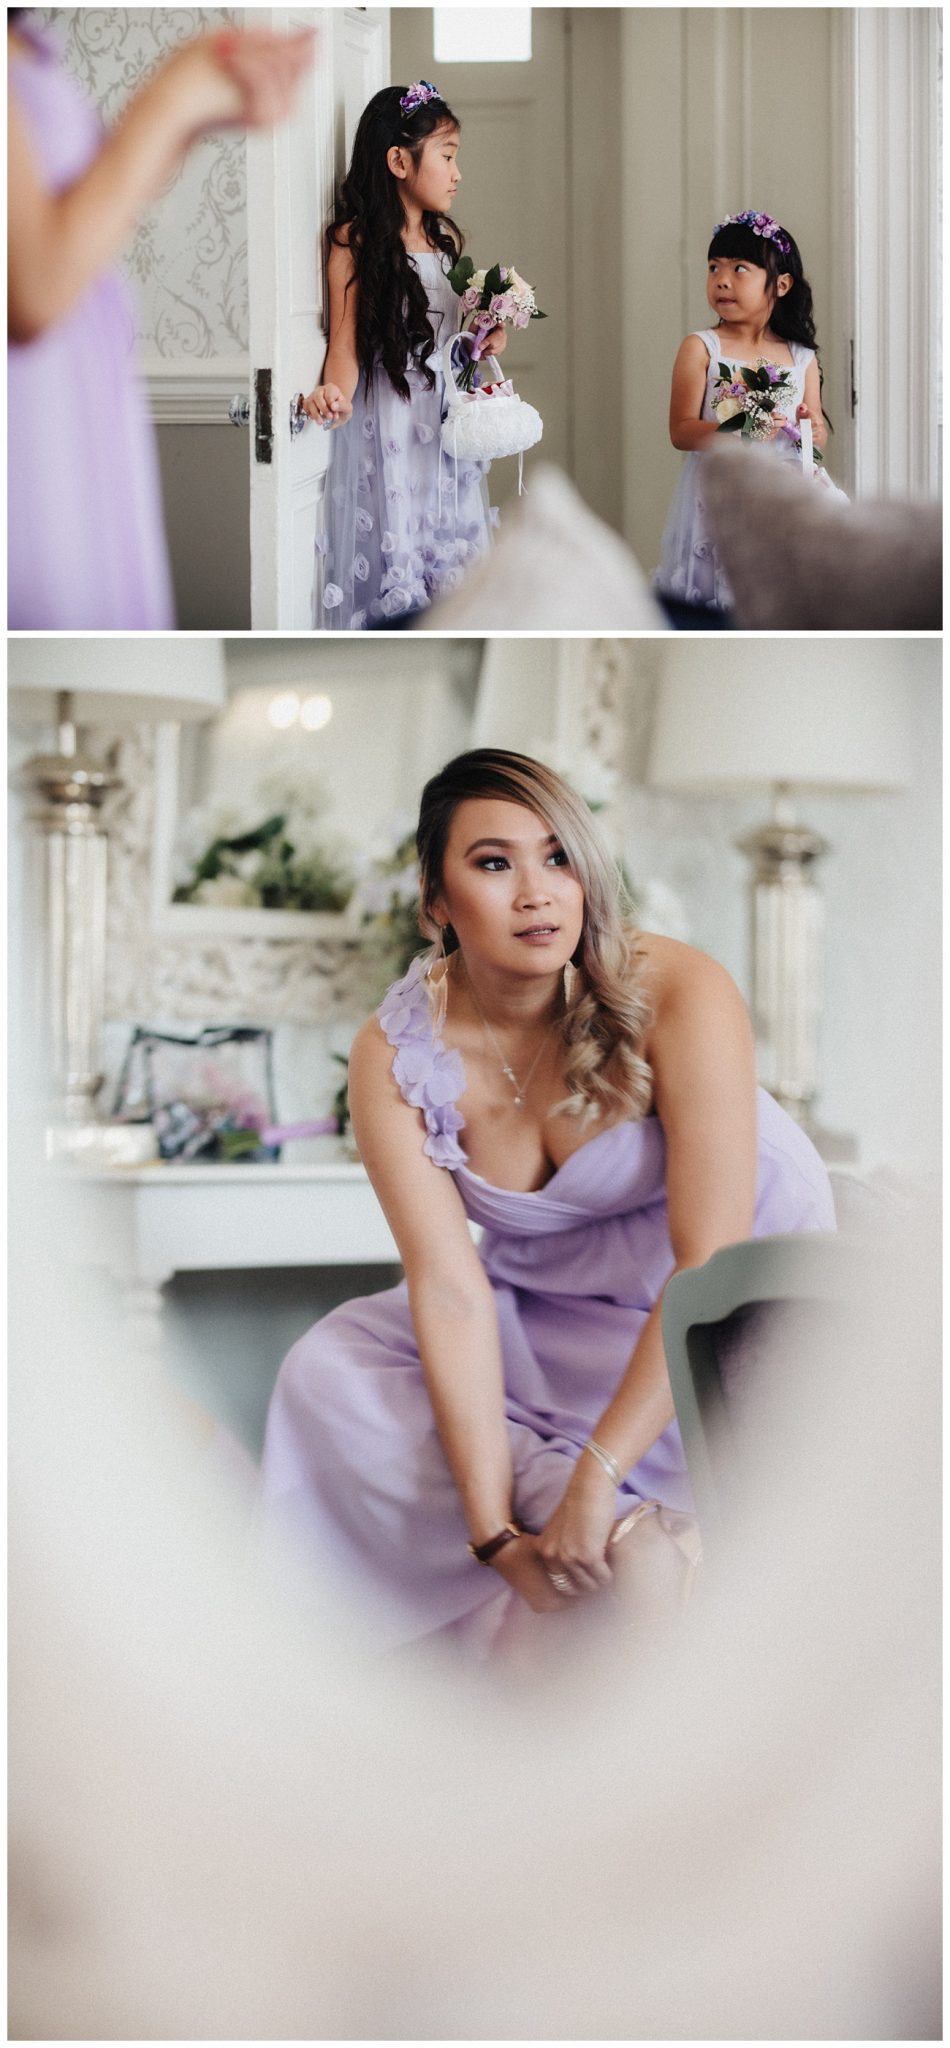 Pictures of the bridesmaids and the flower girls in their lilac dresses